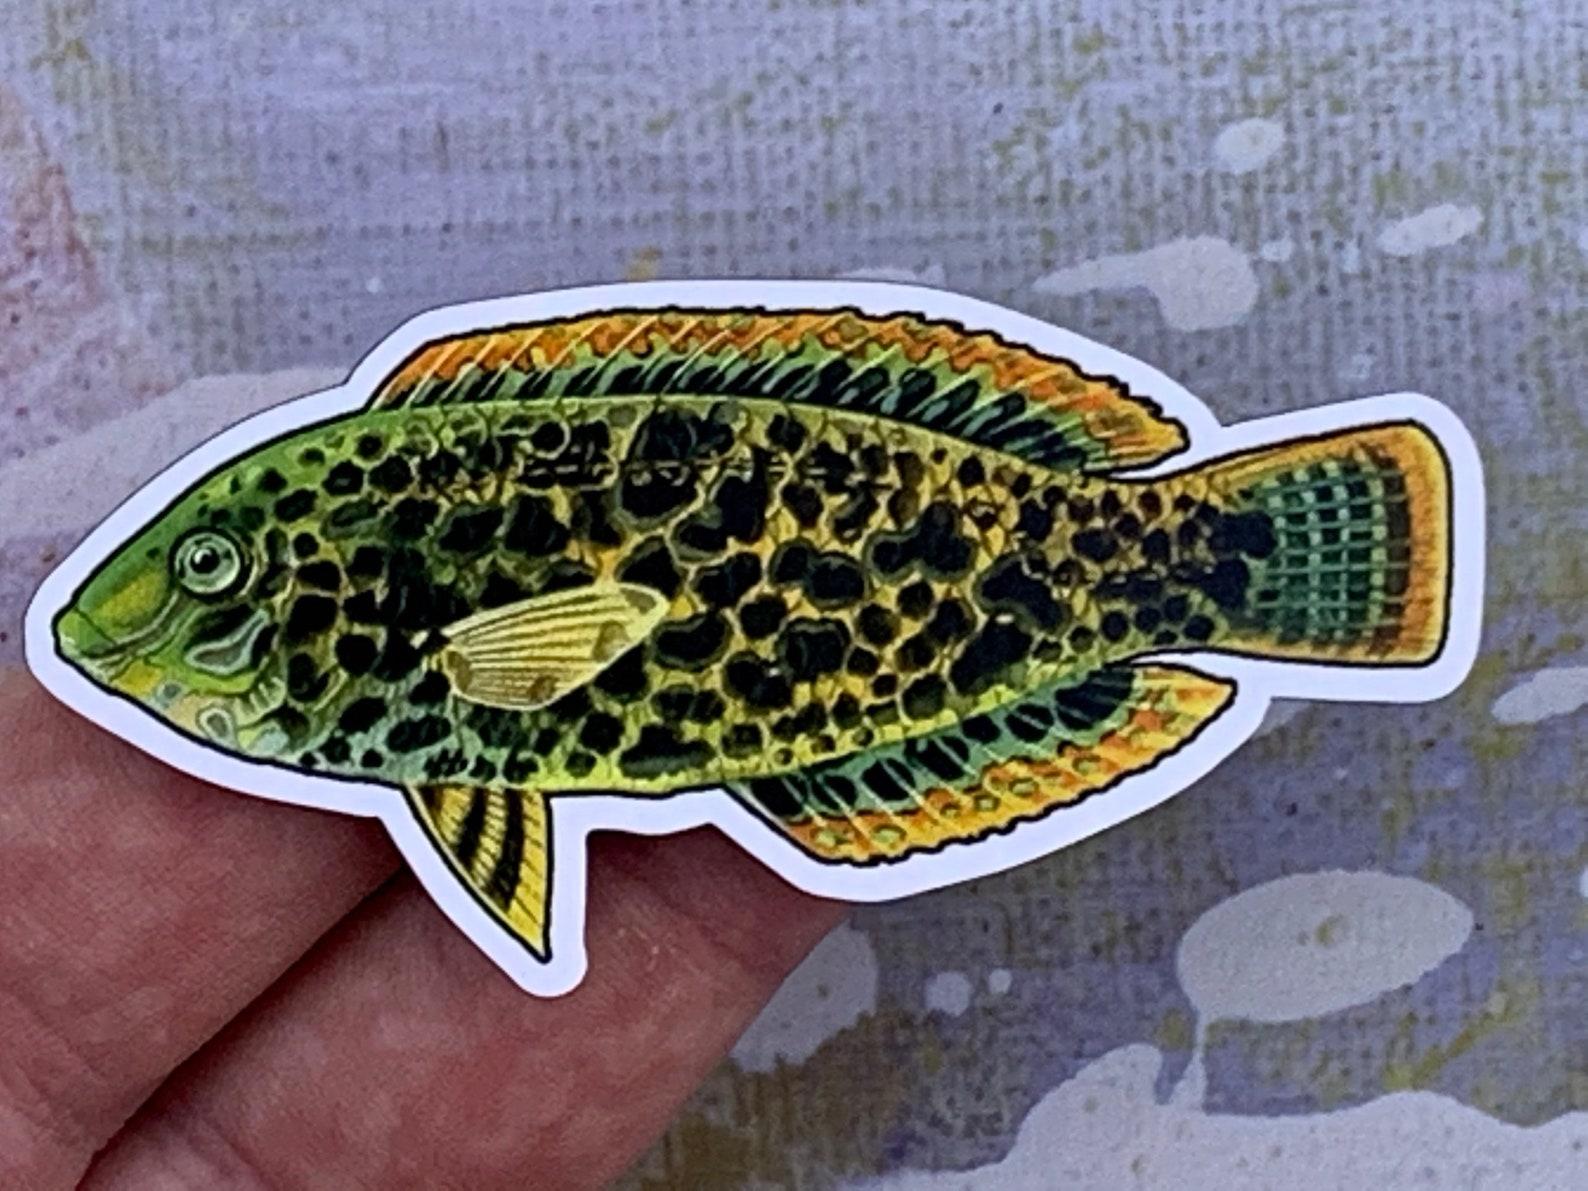 Photo of a black-spotted wrasse magnet in someone's hand